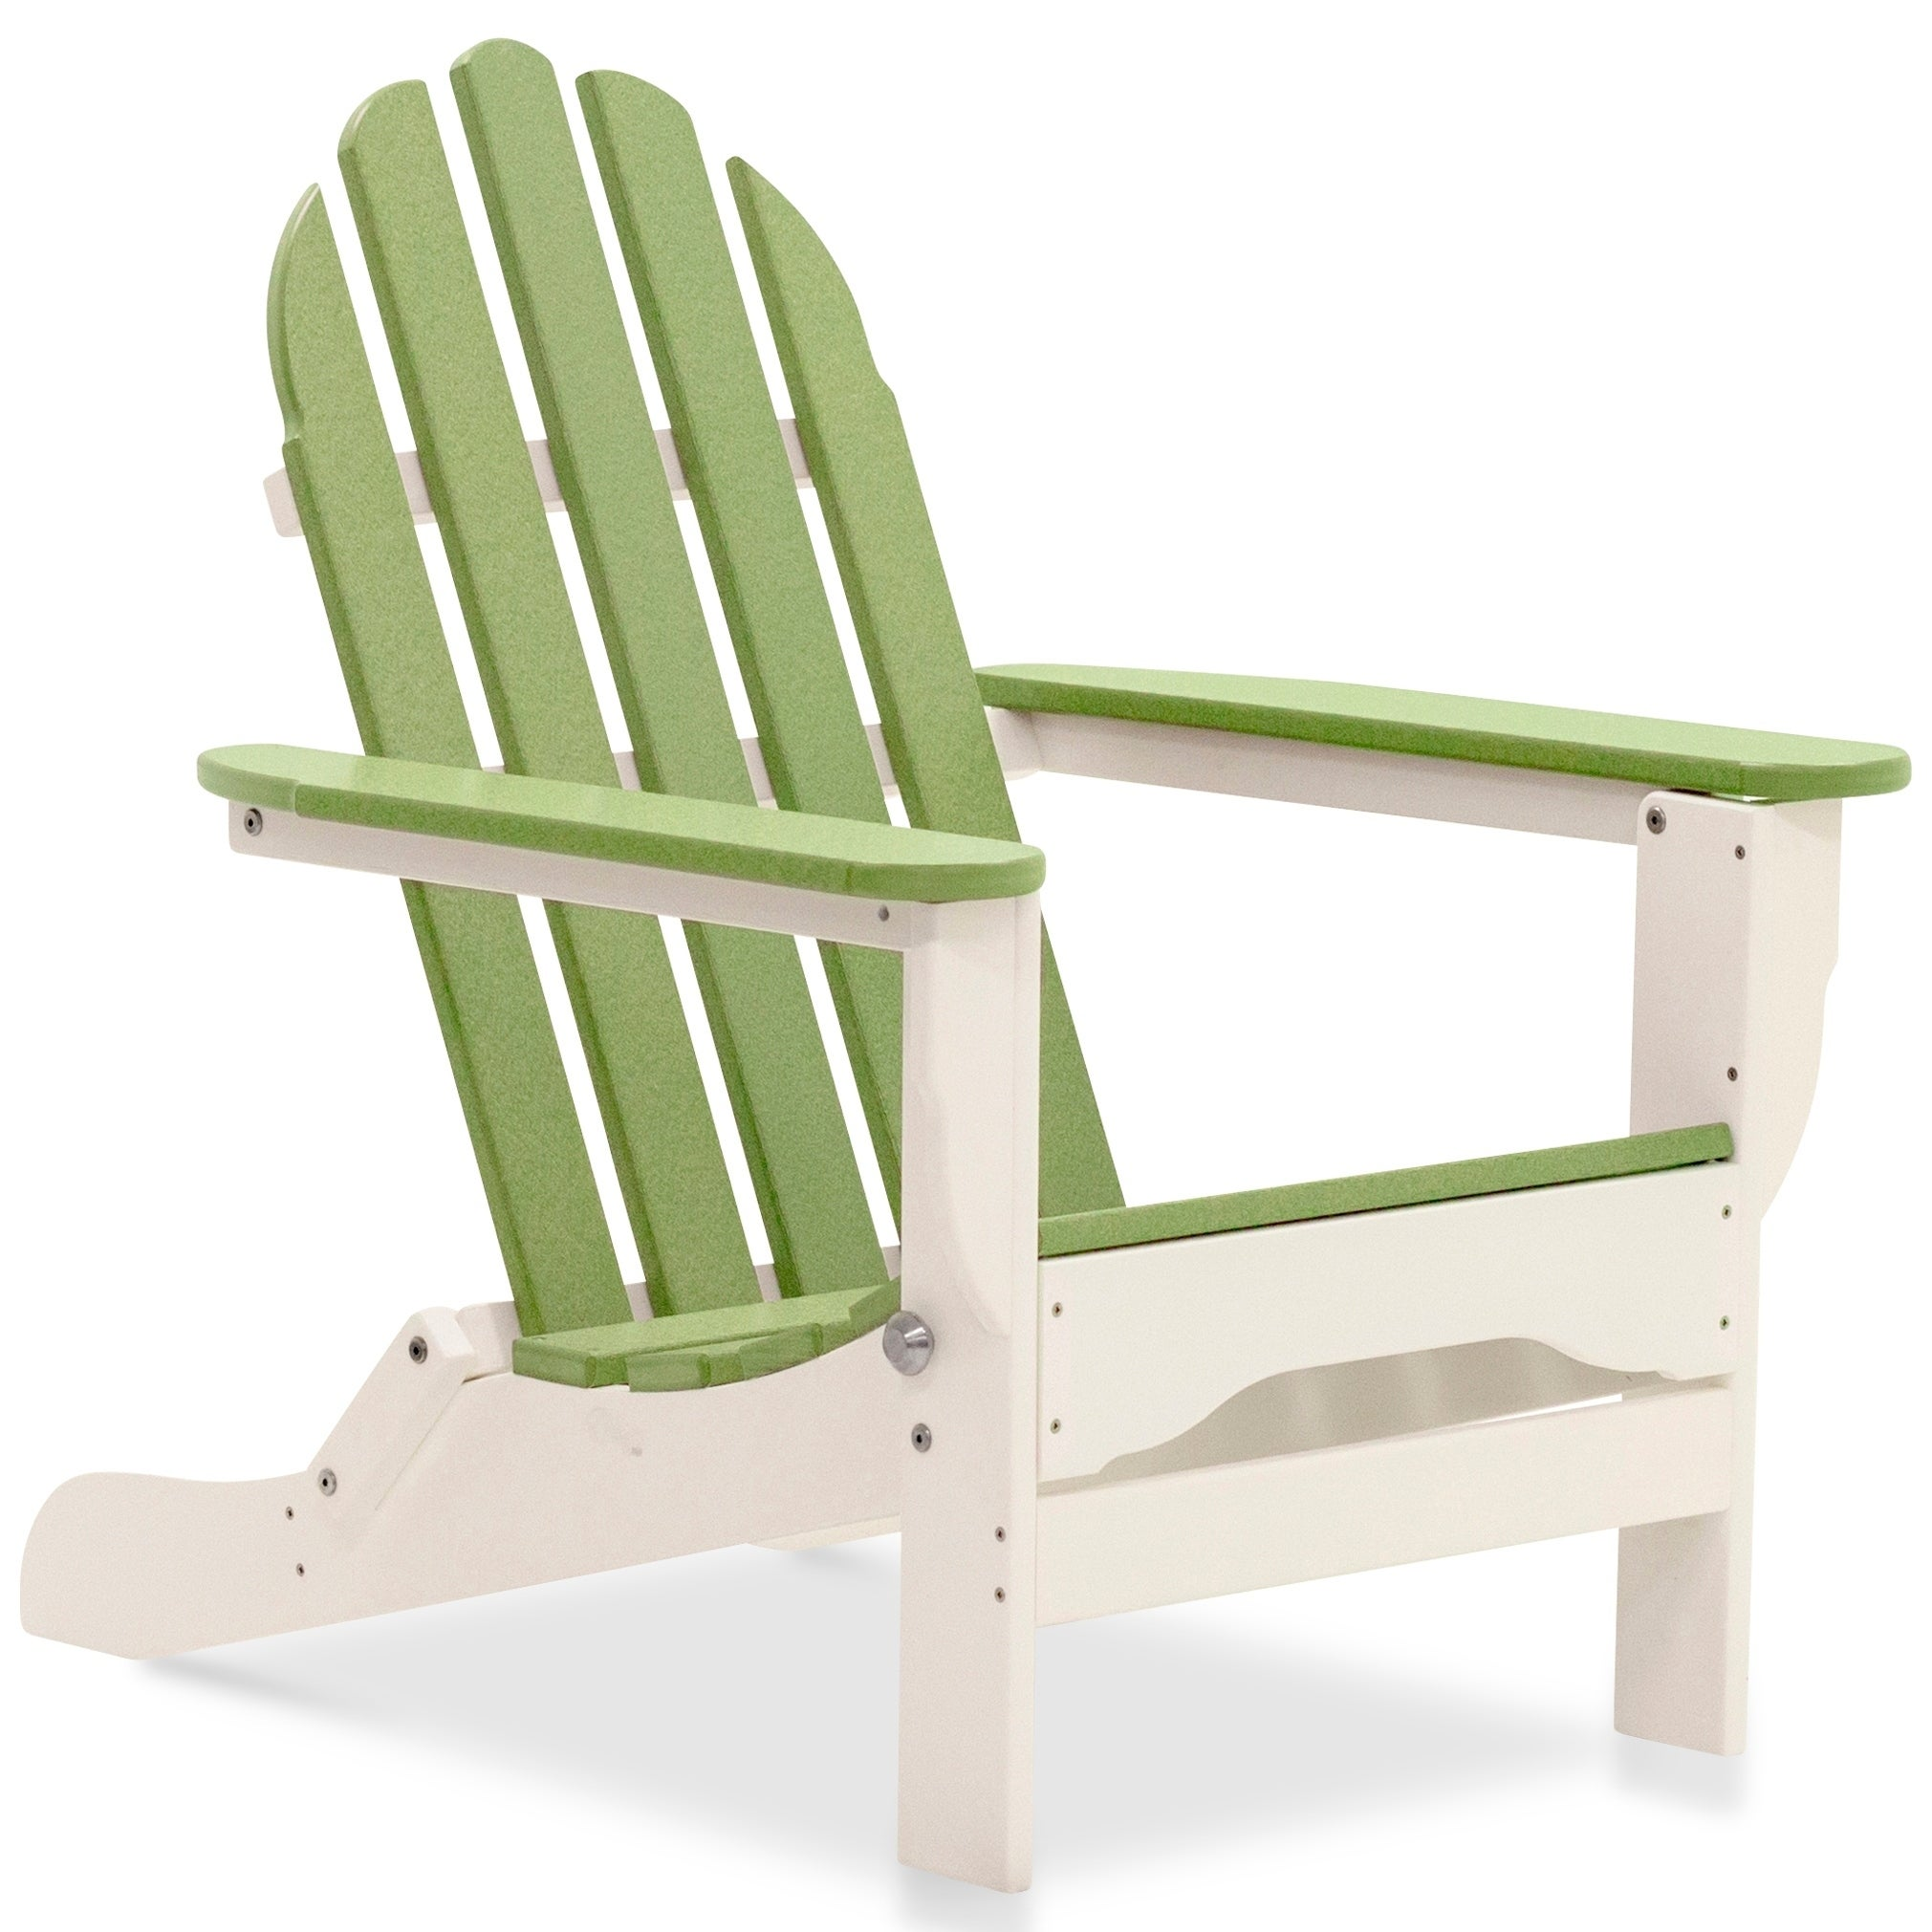 DuroGreen All Weather Adirondack Chair